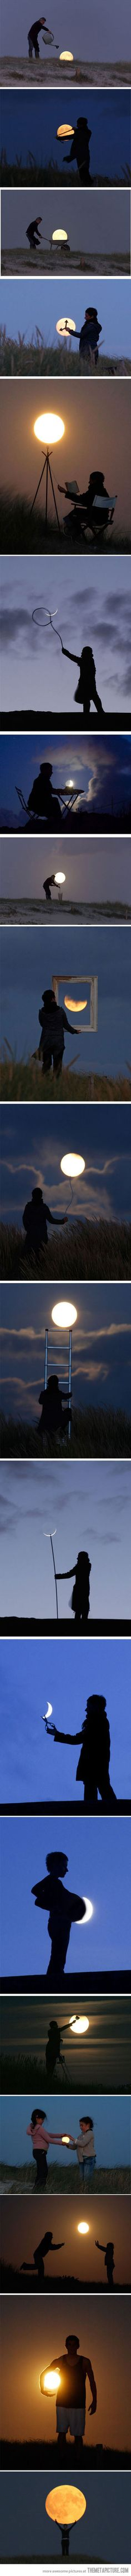 Having fun with the moon… Cute ideas, could also do with sunset/sunrise